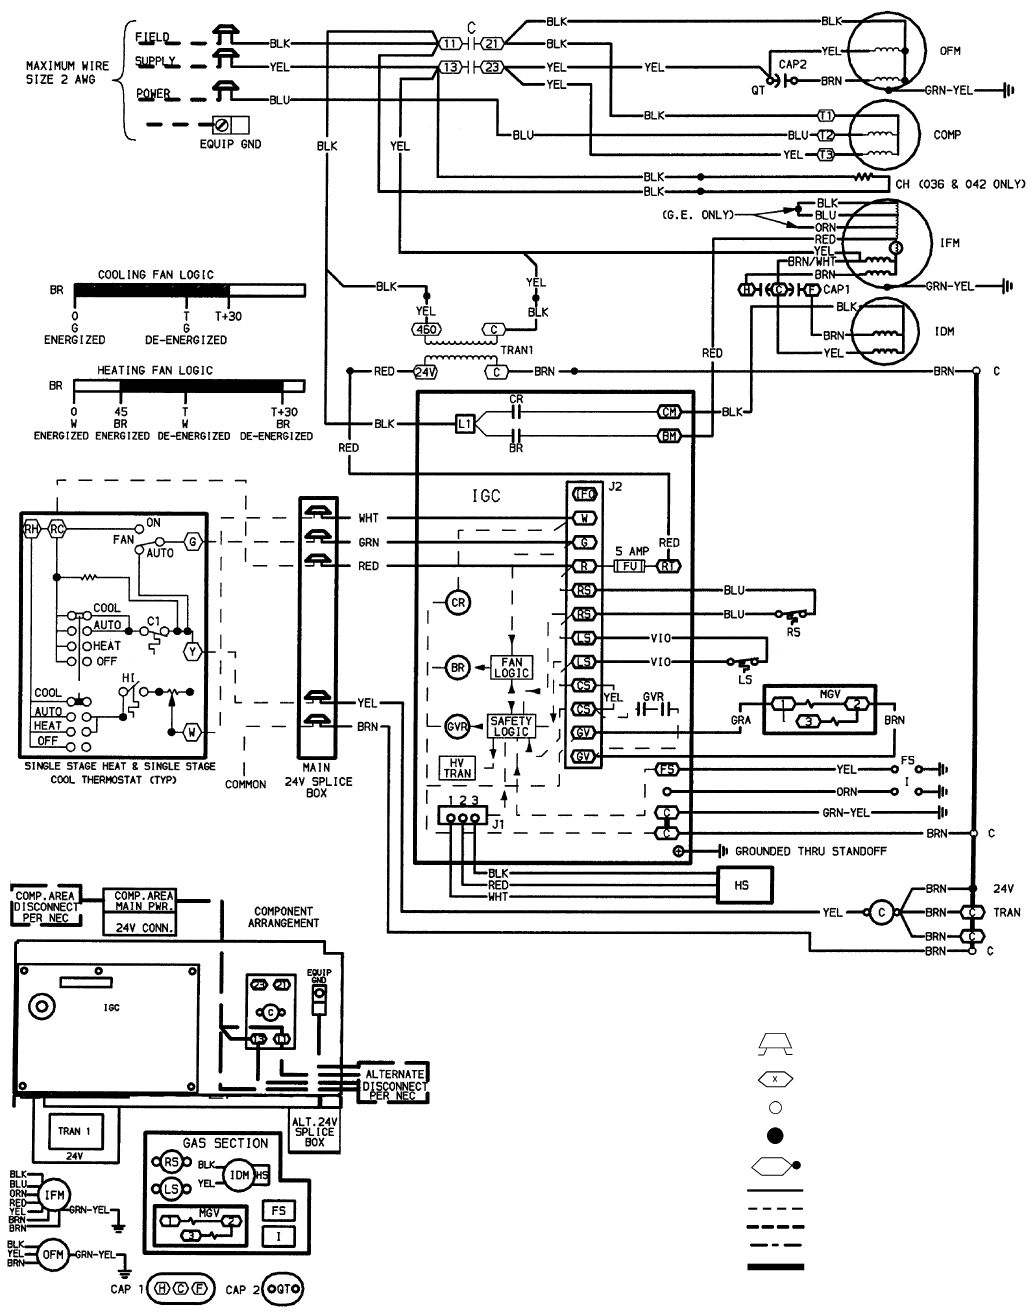 [DIAGRAM] Basic Hvac Indoor Blower Fan Capacitor Wiring